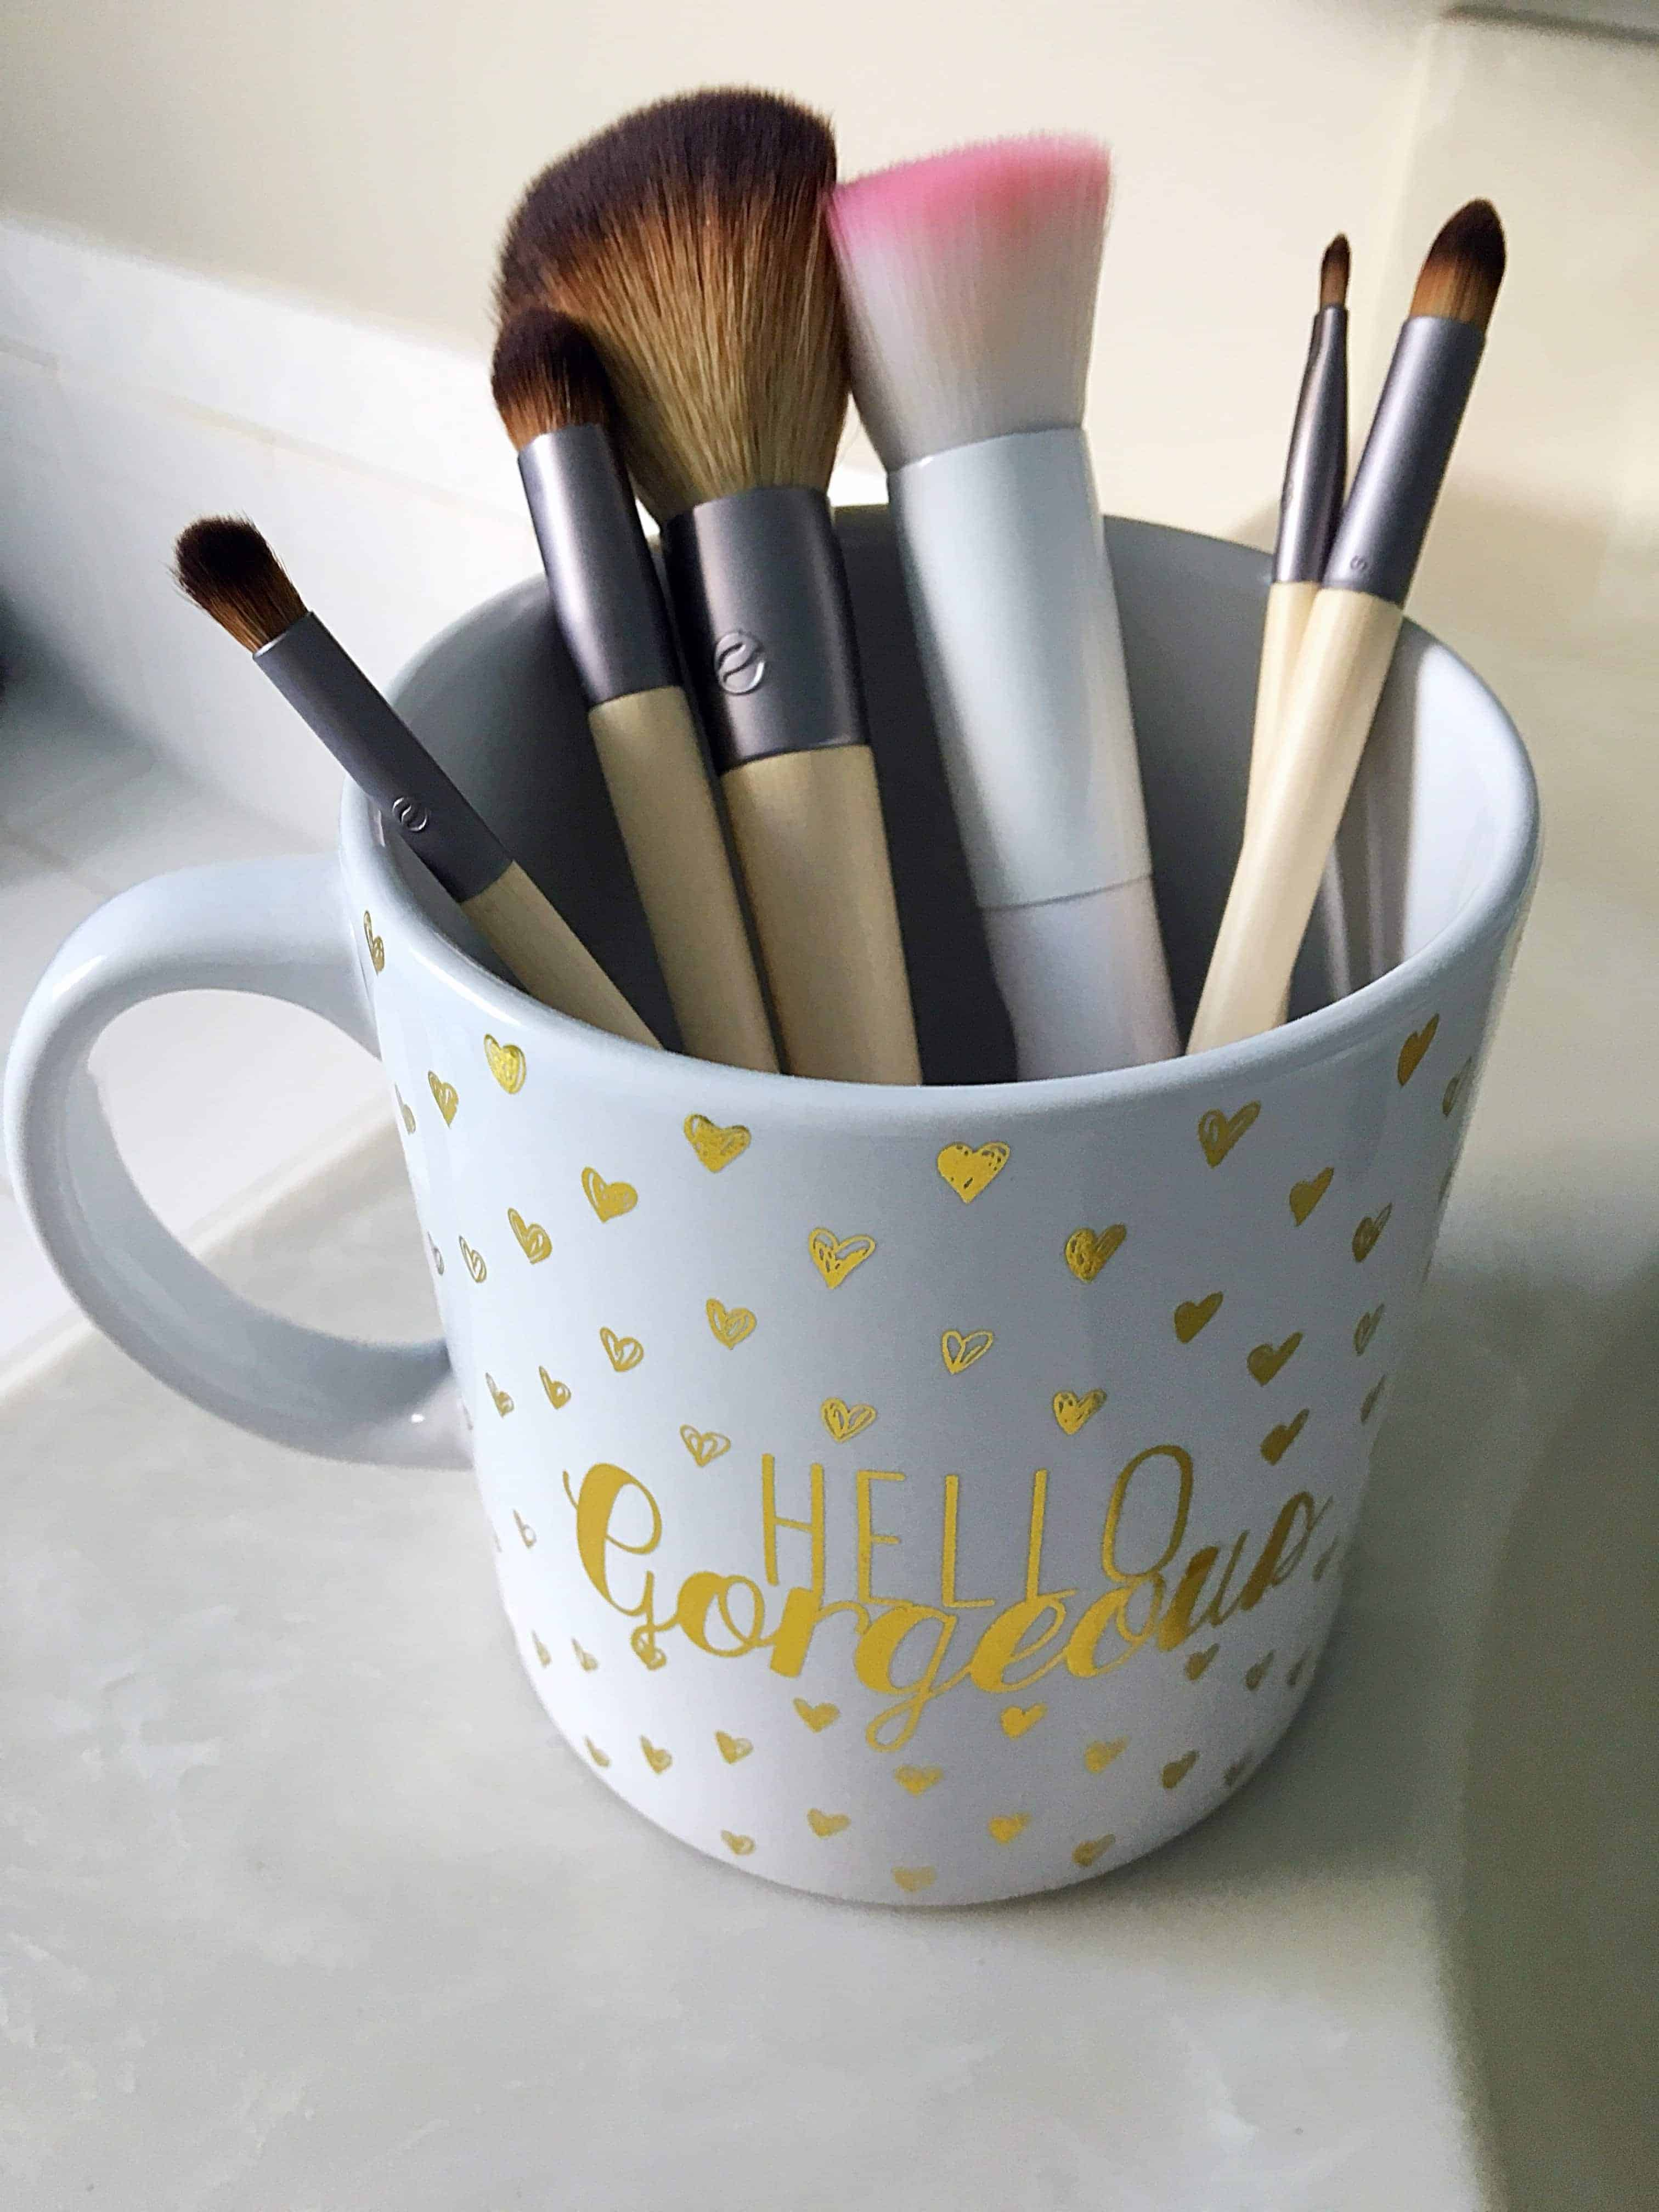 How to Best Clean Makeup Brushes